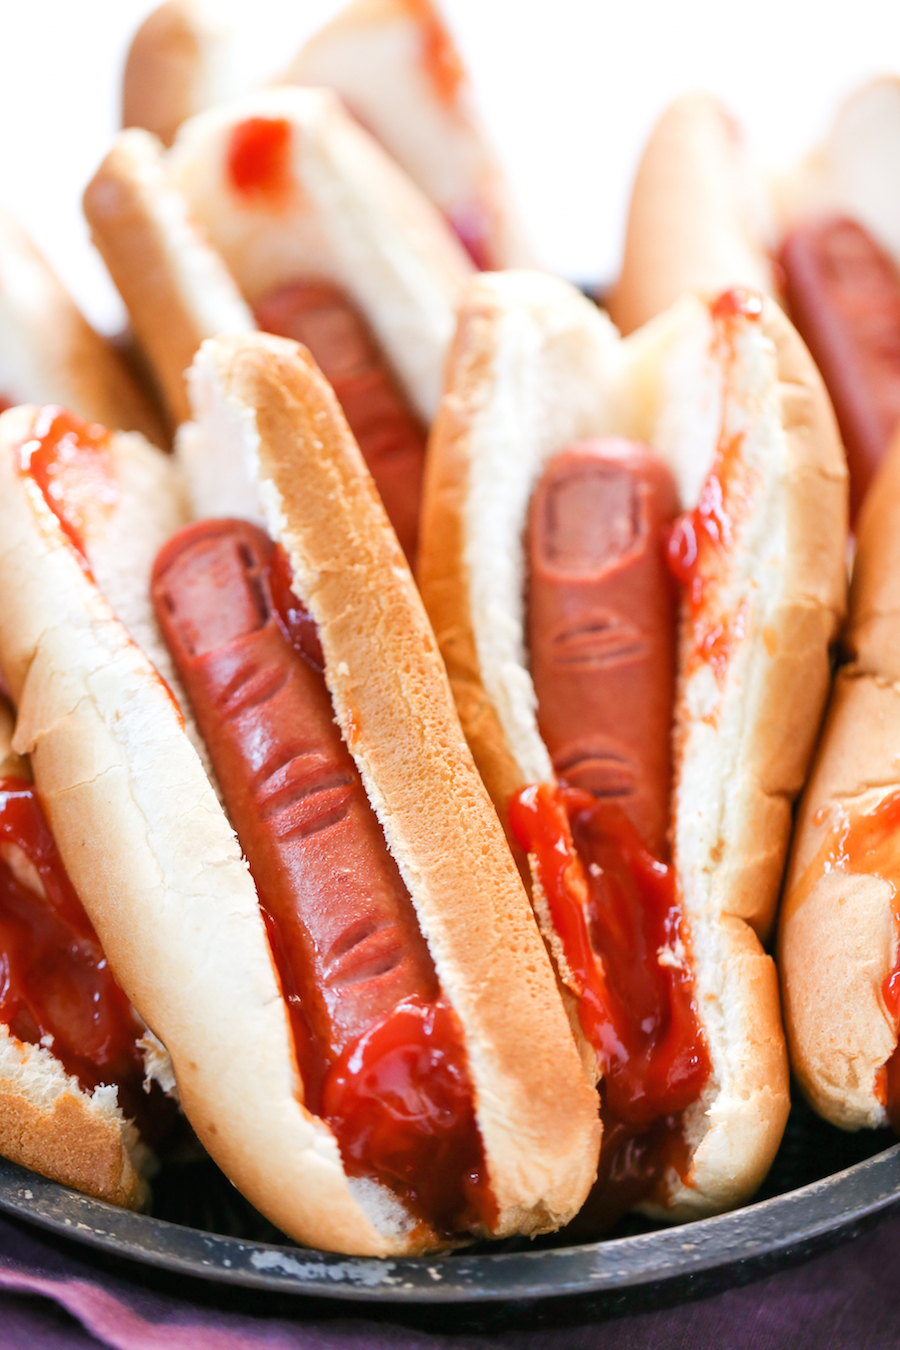 .. Halloween Bloody Severed Finger Hot Dogs, Gross Halloween Food, Finger Food, Halloween Party .